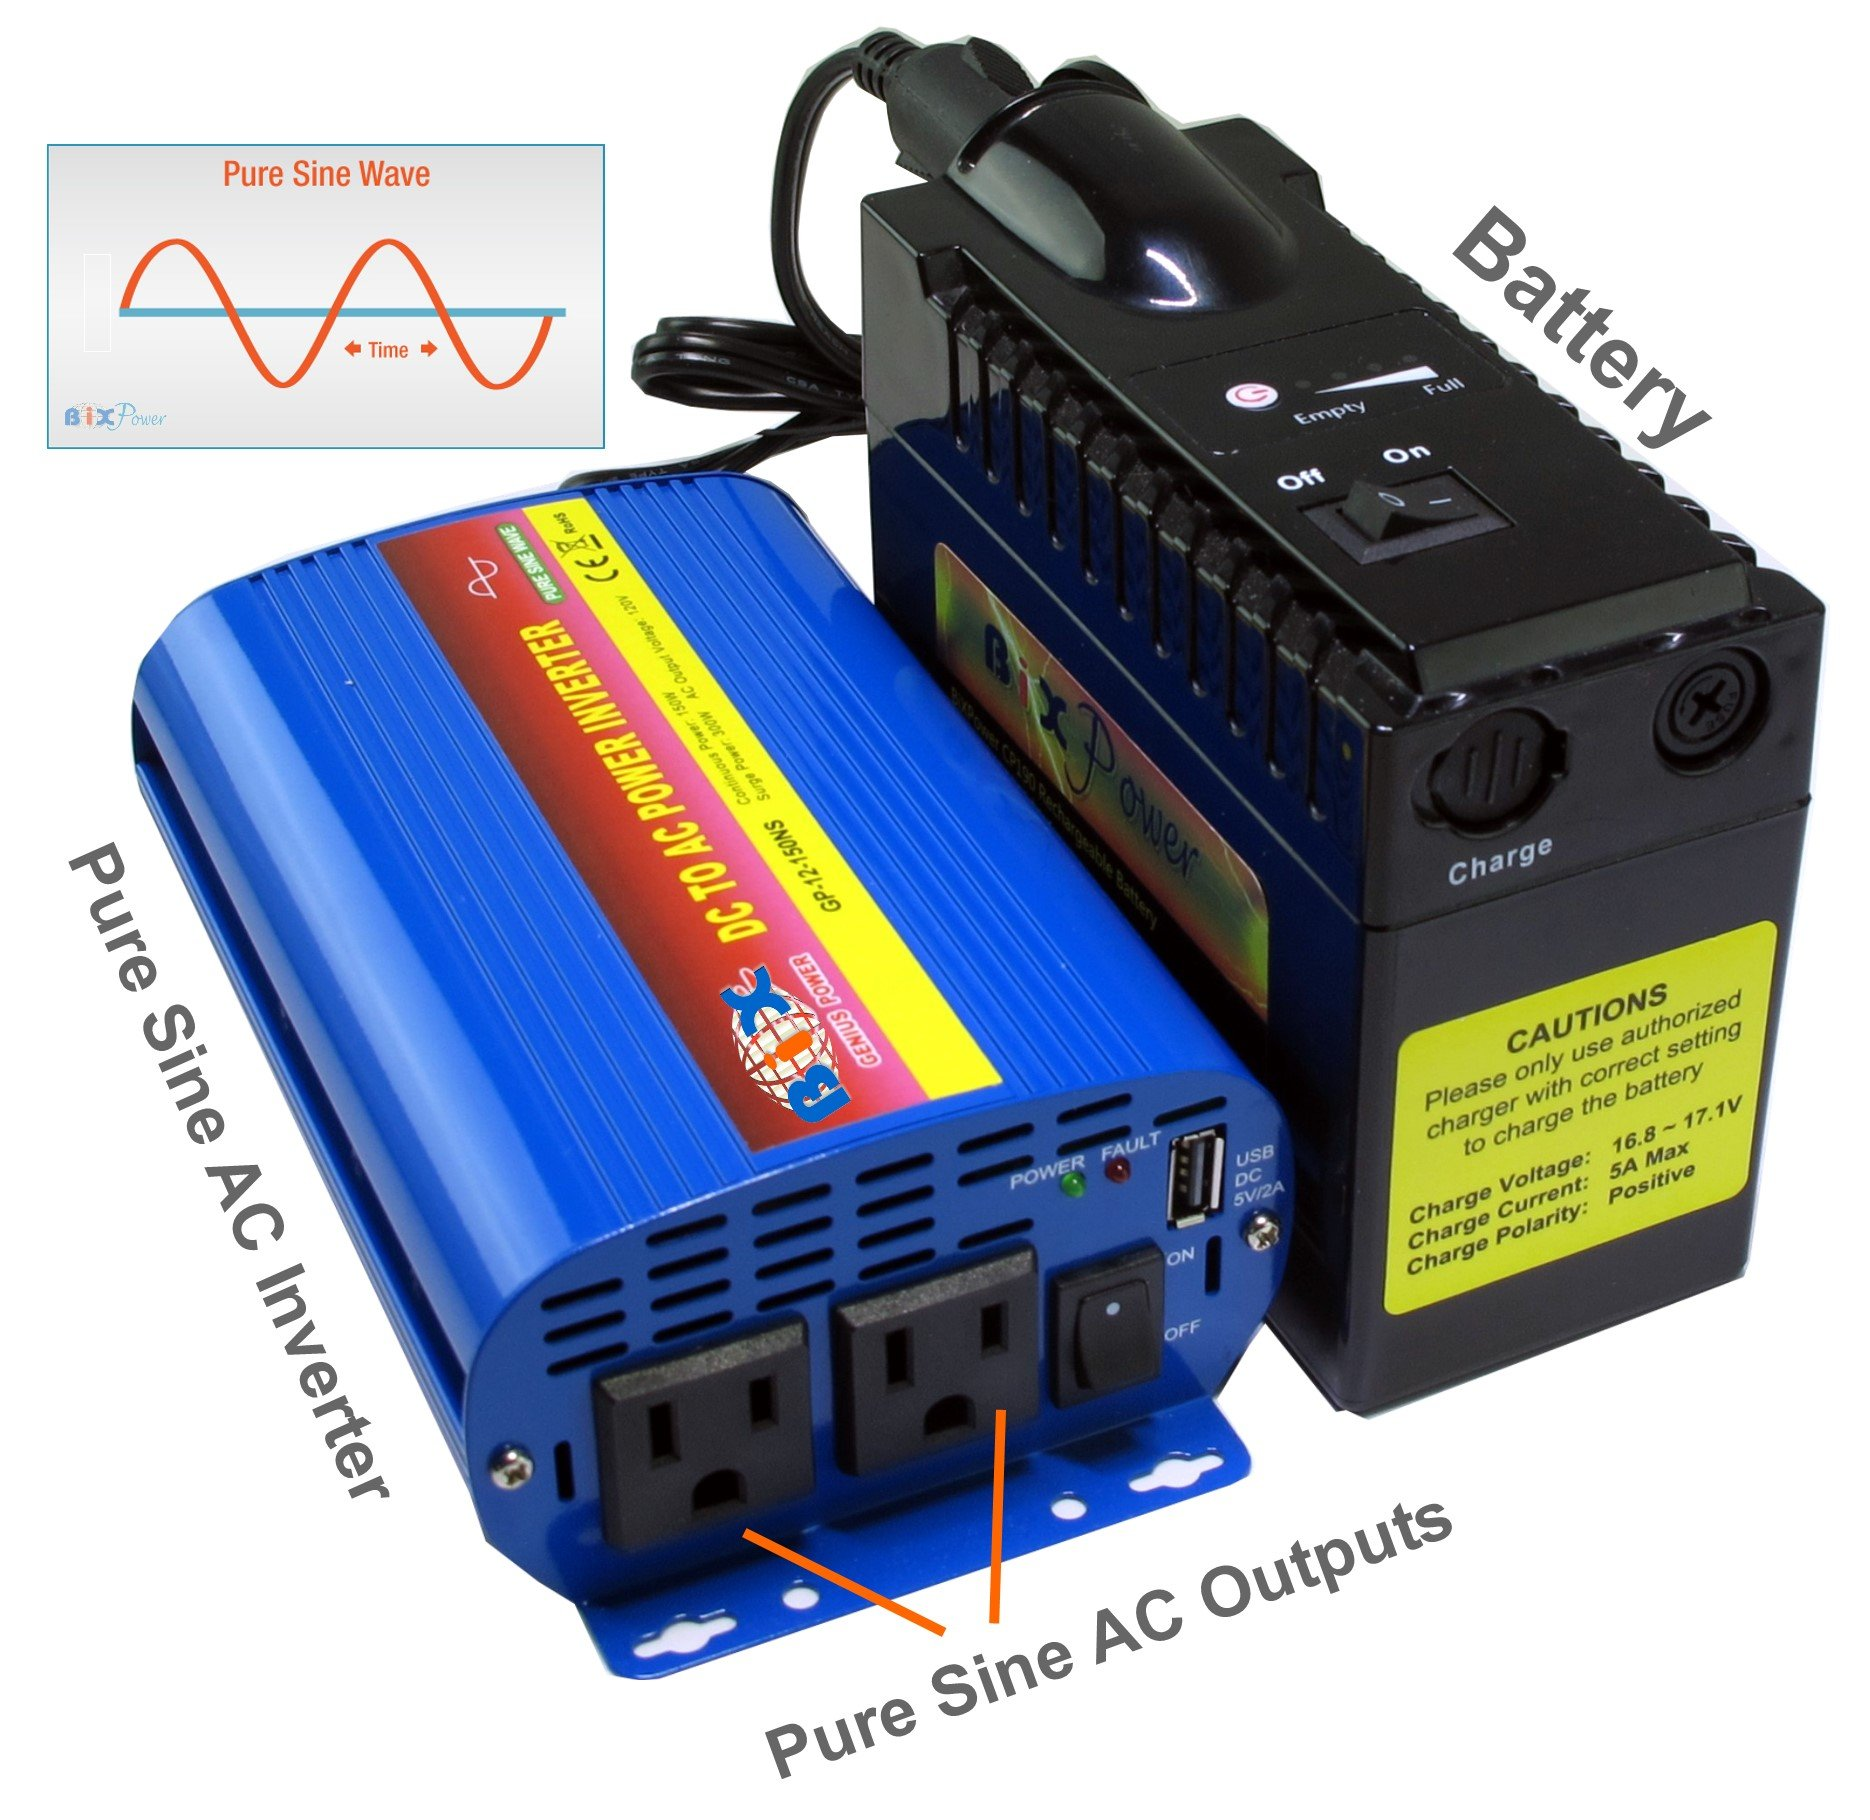 BiXPower XP200 Pure Sine AC Power Pack - 150W Pure Sine Wave AC Power Inverter with 192Wh Lithium Ion Battery by BiXPower (Image #1)